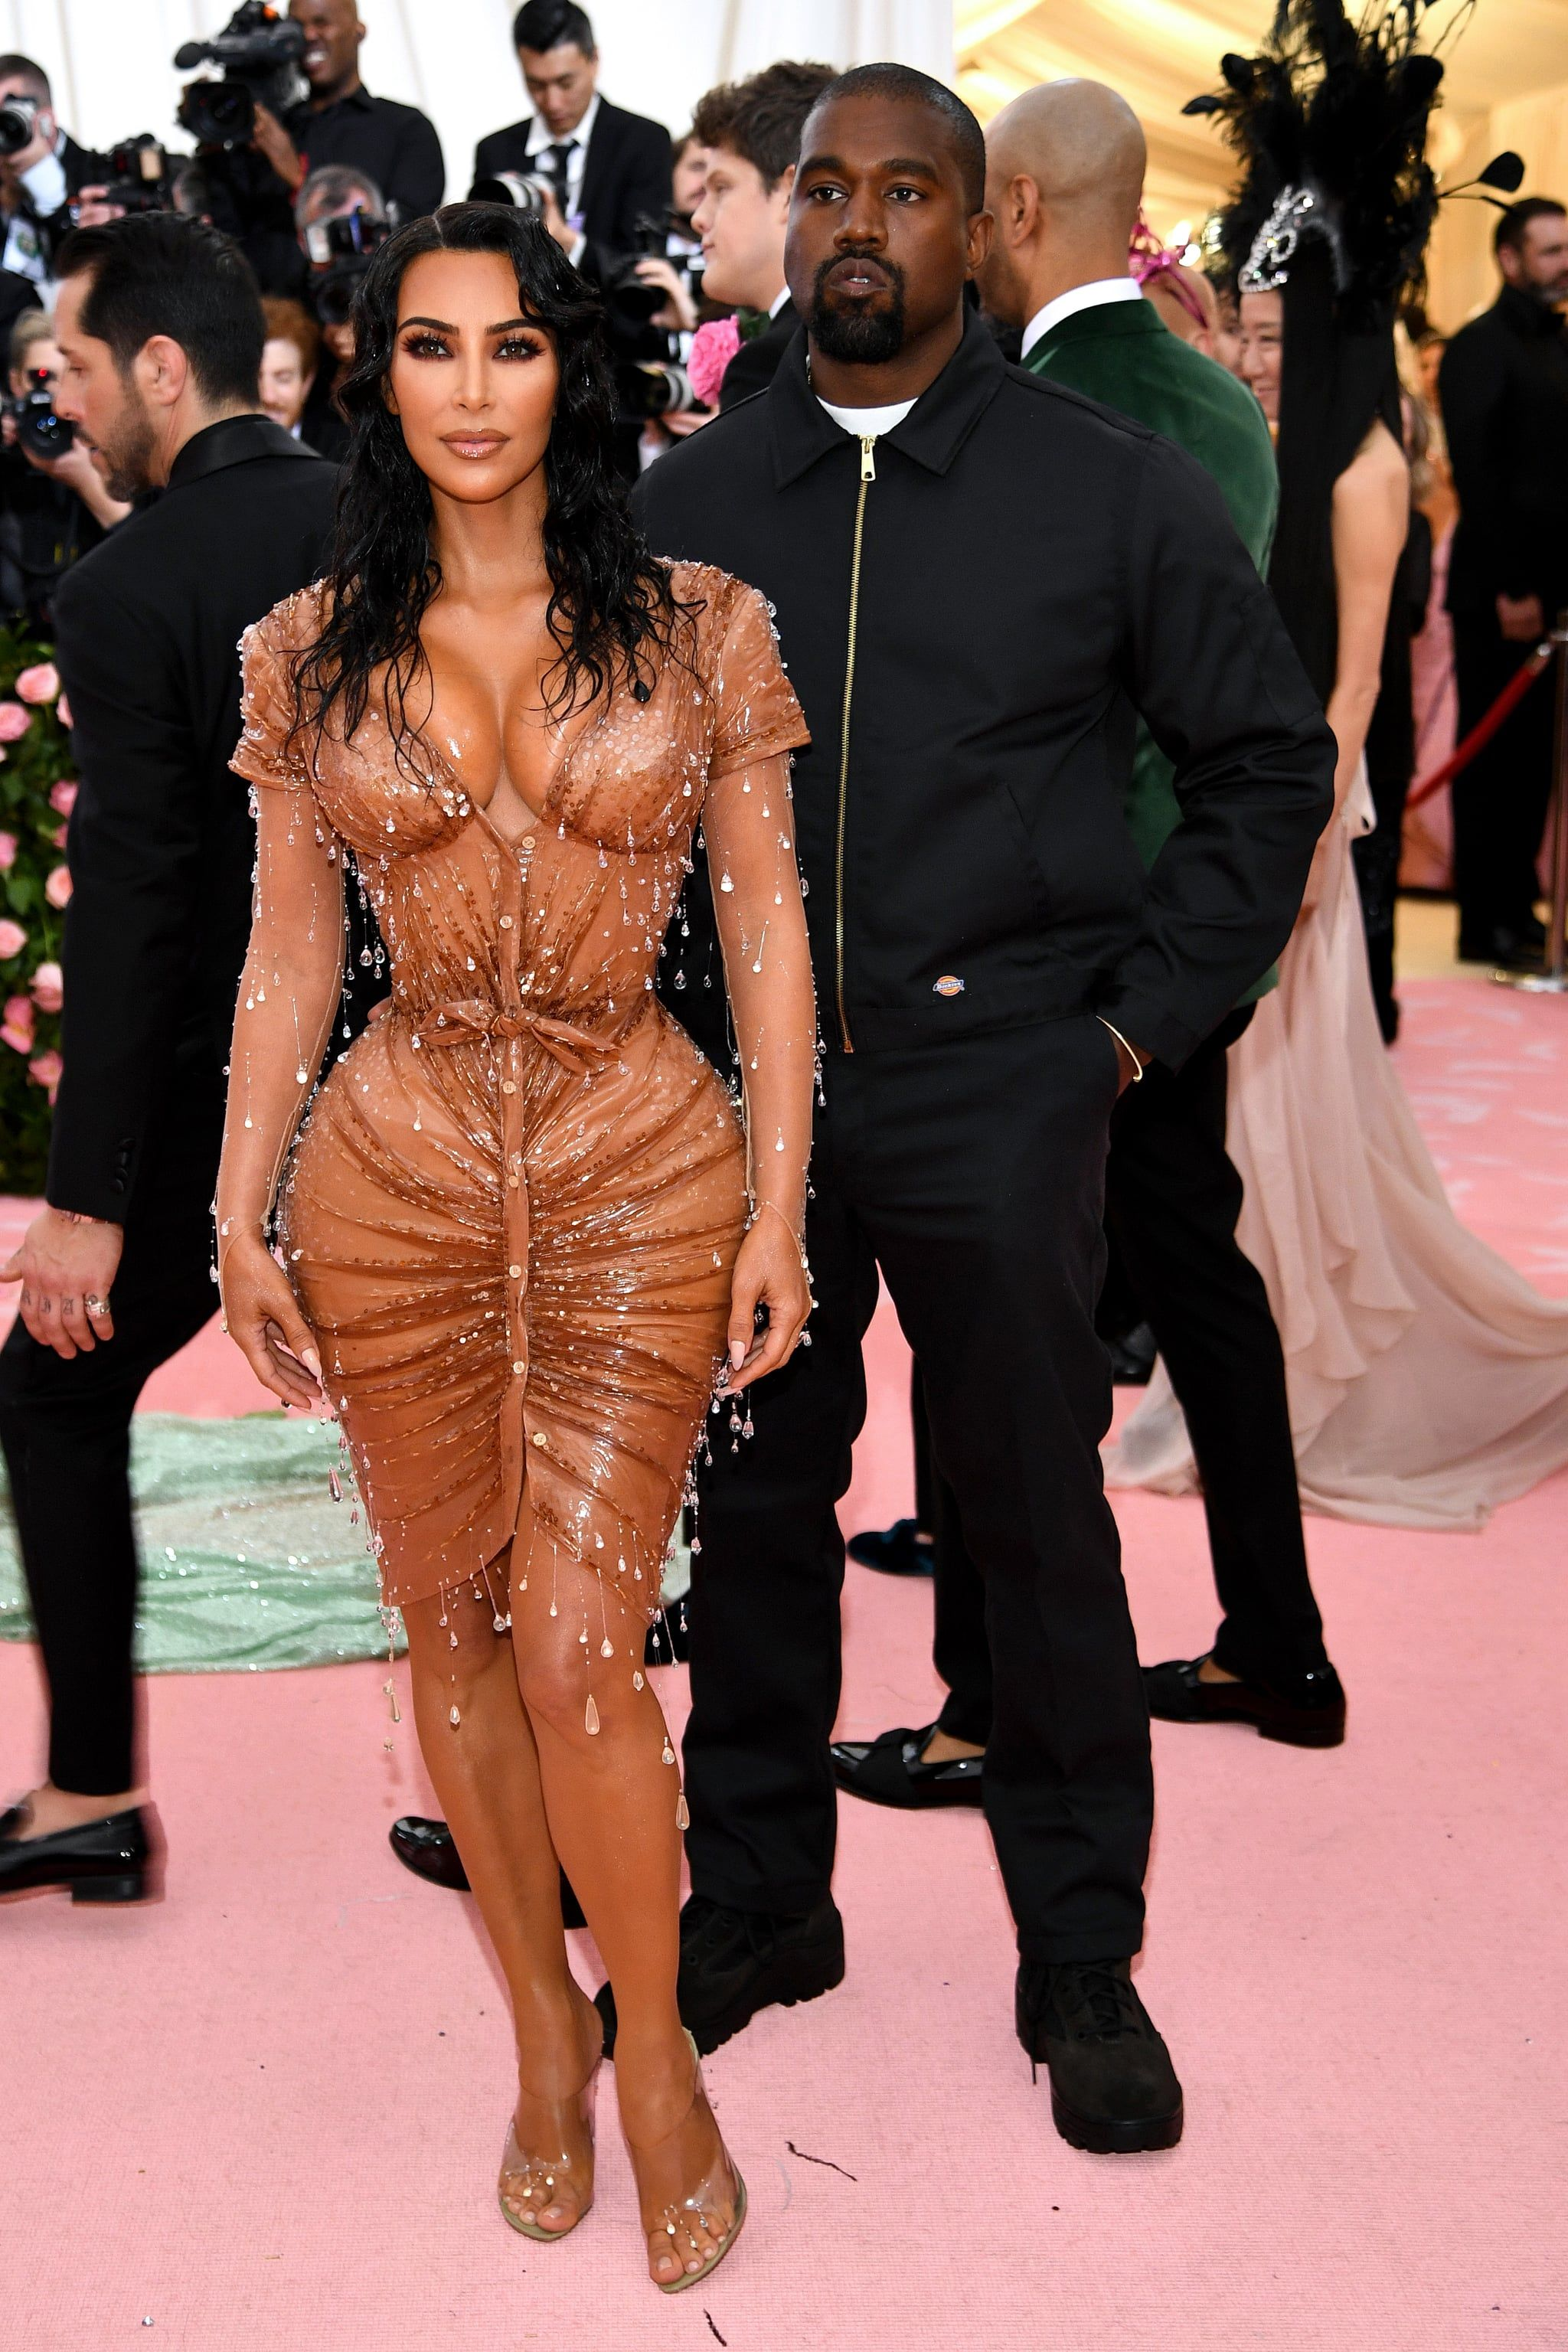 Kim Kardashian Is Quite Literally Dripping In Crystals In Her Bodycon Met Gala Dress Kim Kardashian Wedding Dress Kanye Kim Kardashian Wedding Kim Kardashian Wedding Dress